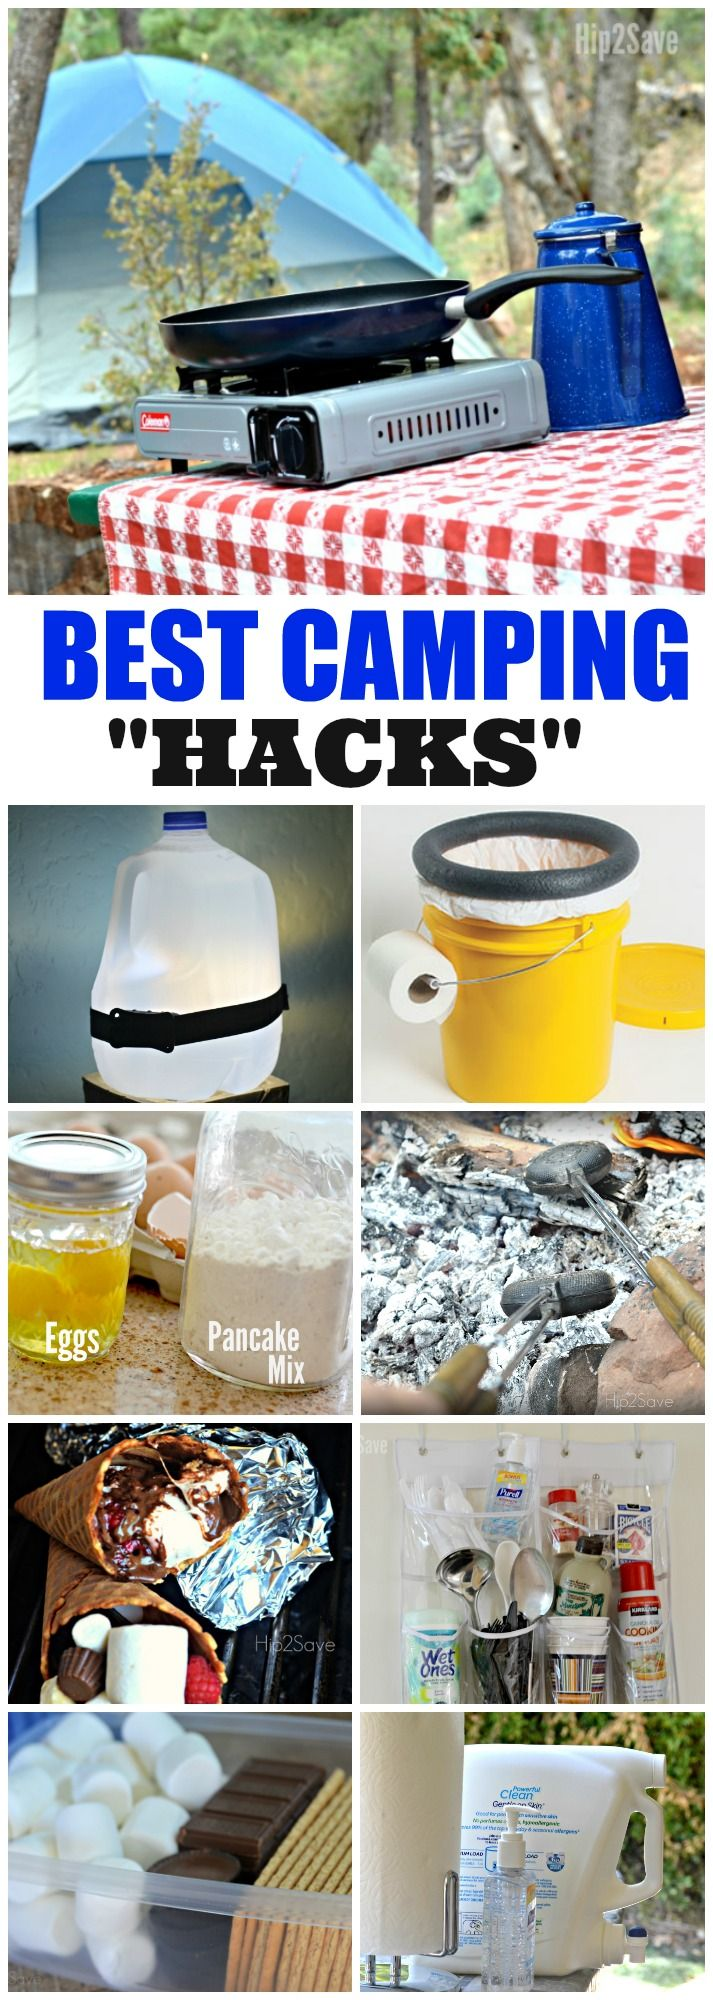 10 Camping Hacks & Tips (DIY Outdoor Toilet, Campfire Cones + More)